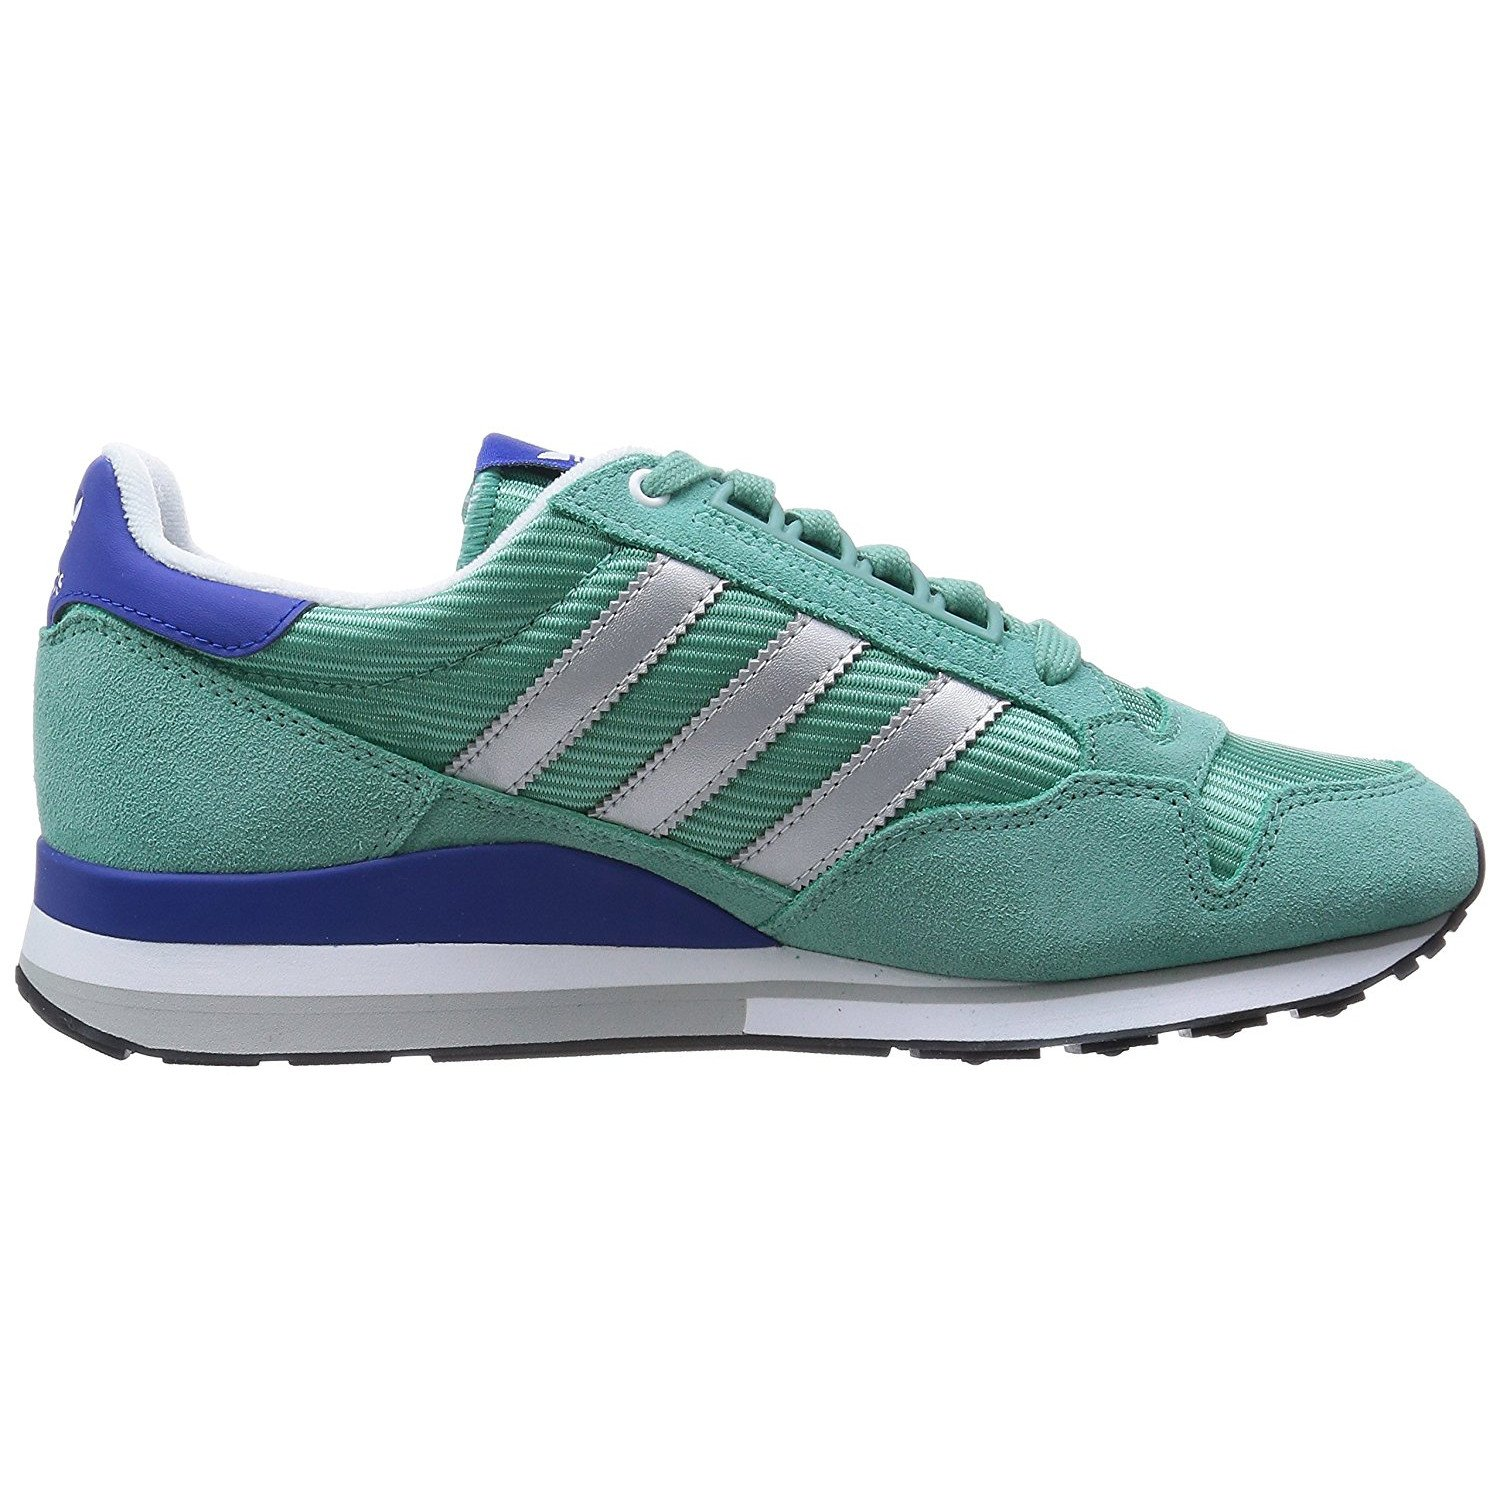 new product 08ac7 c6abd Details about ADIDAS ORIGINALS ZX 500 OG W WOMEN SNEAKERS B26166